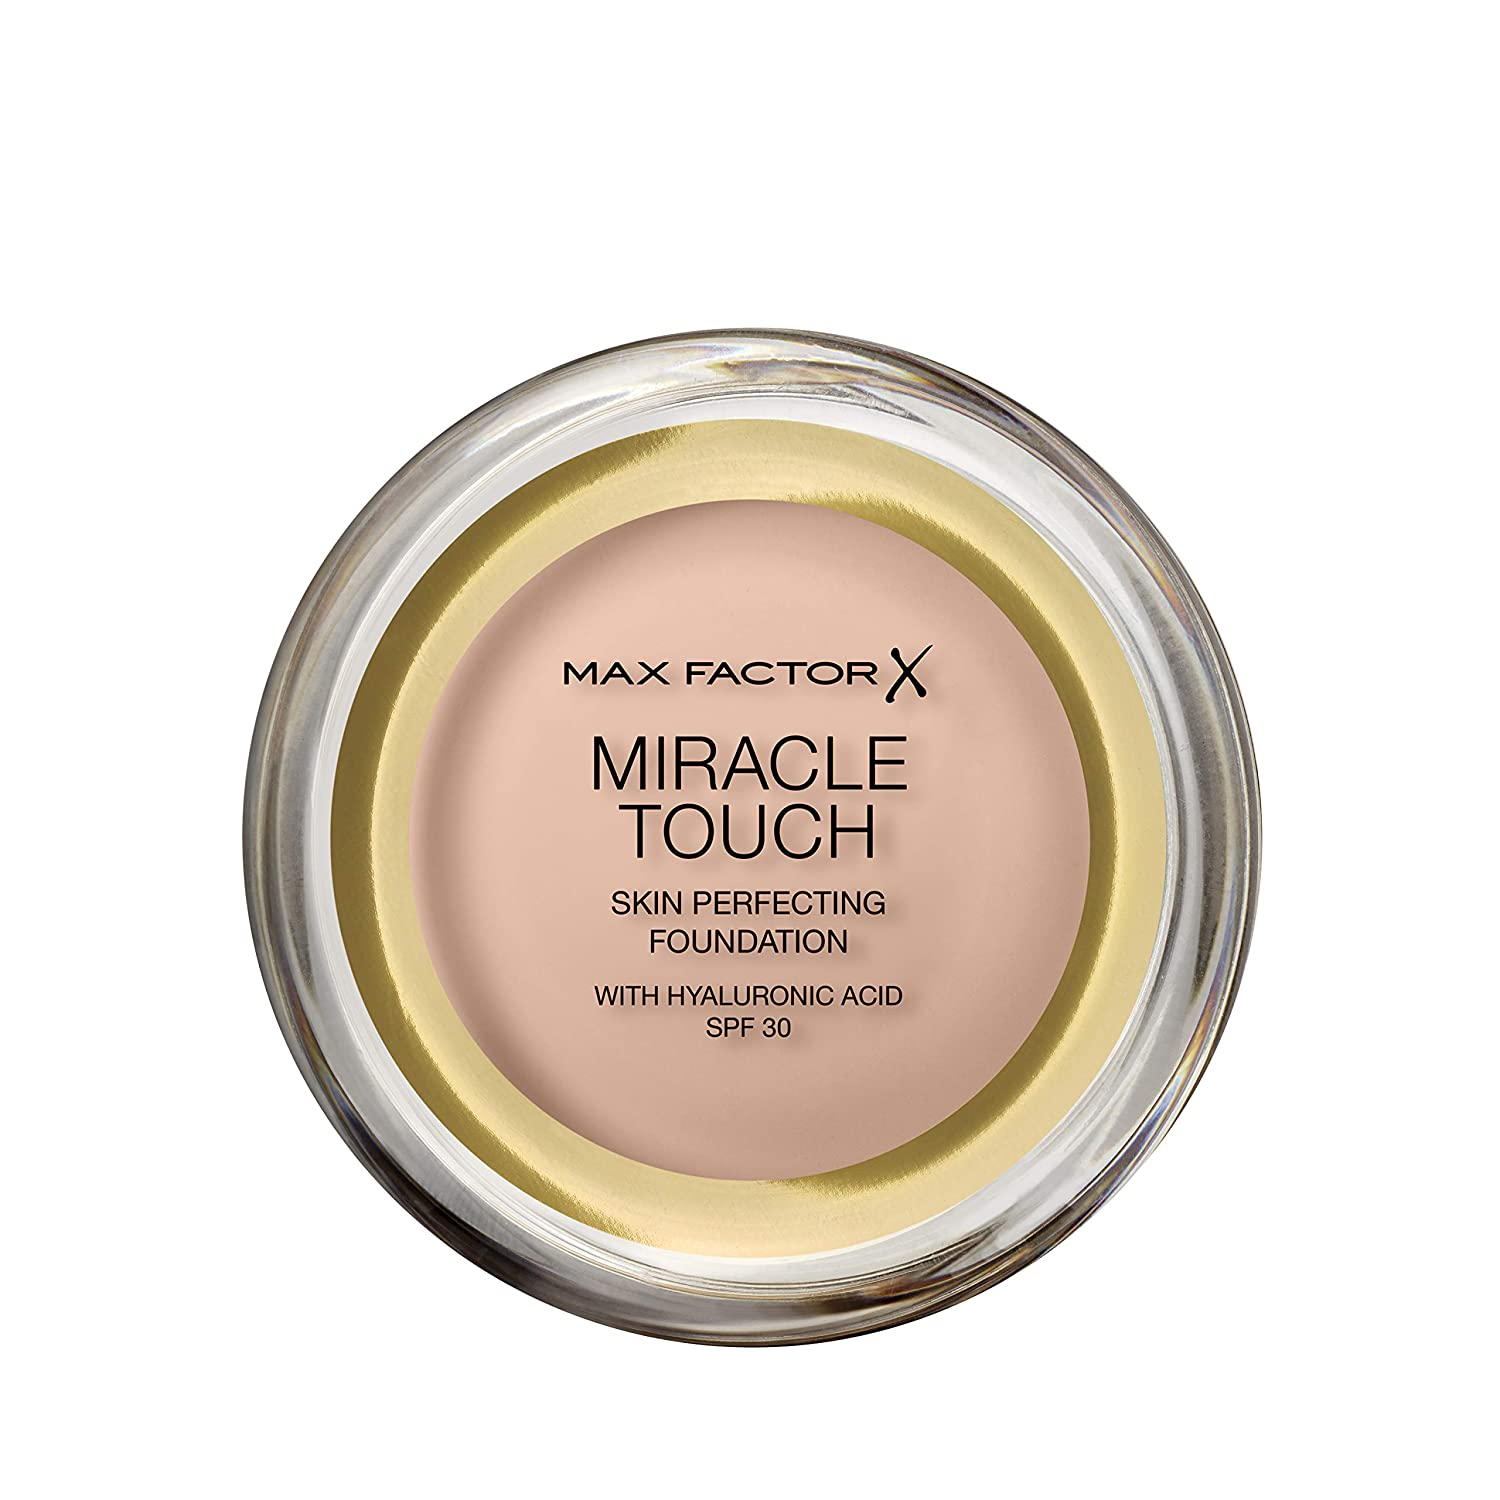 Max Factor Miracle Touch Foundation, New and Improved Formula, SPF 30 and Hyaluronic Acid, 38 Light Ivory